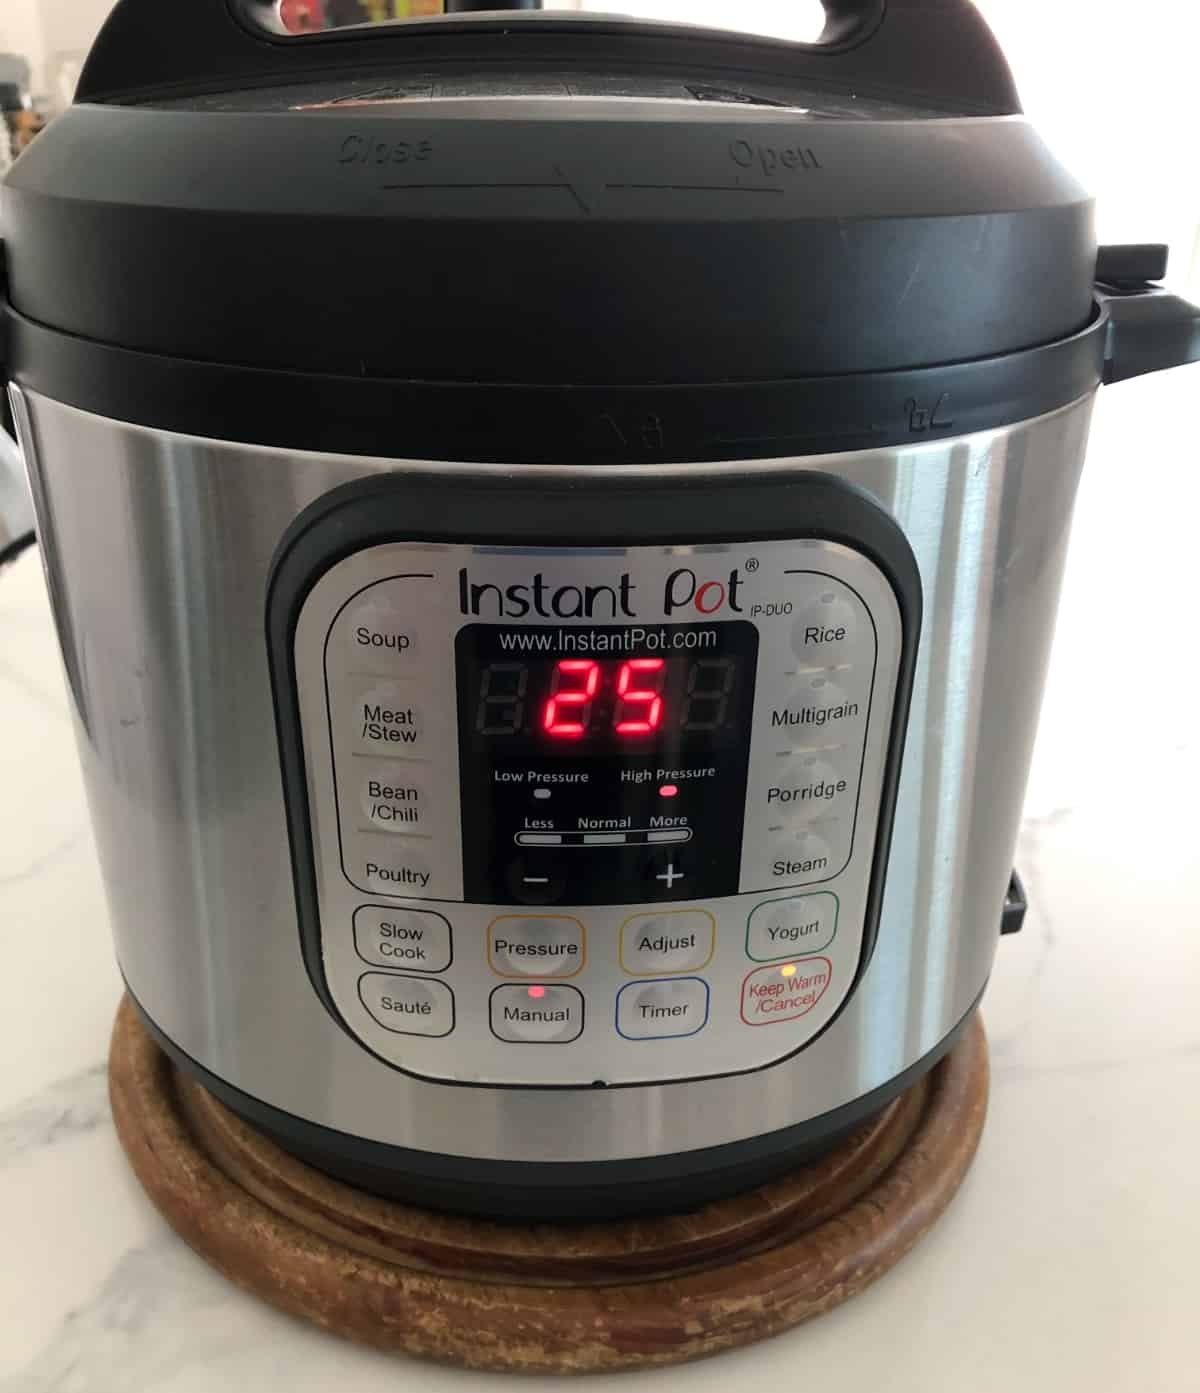 Instant Pot set to High Pressure for 25 minutes.